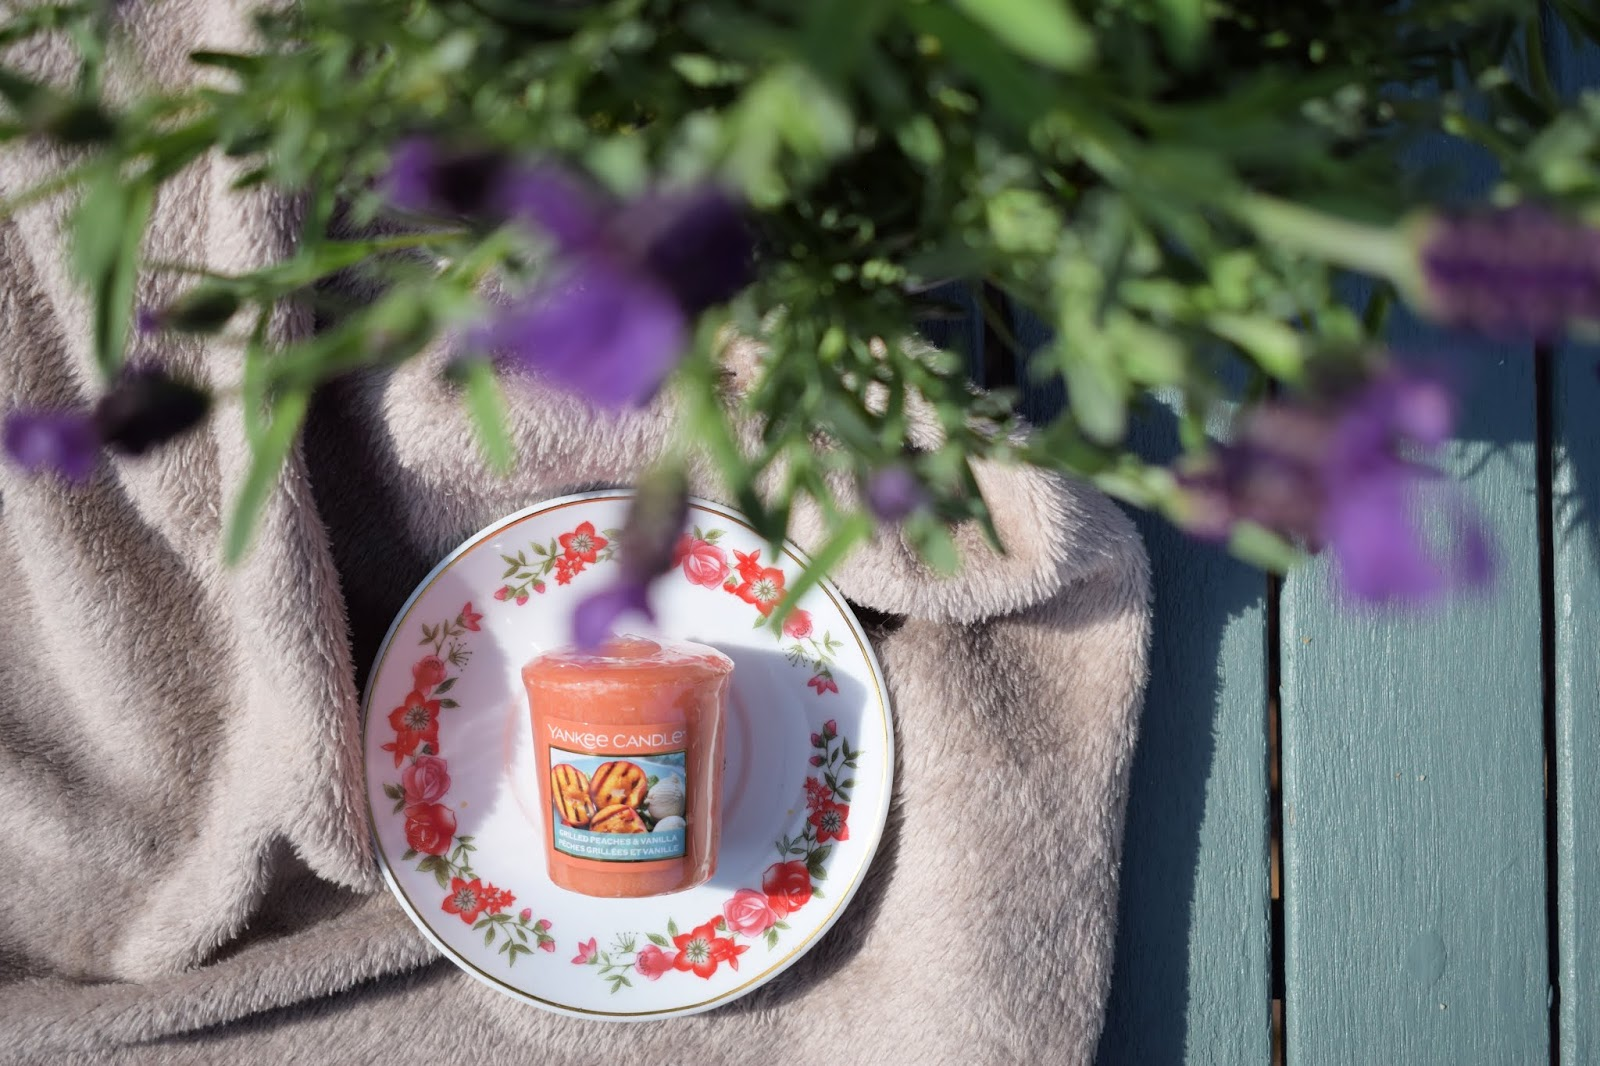 Yankee Candle Grilled peach and vanilla candle review